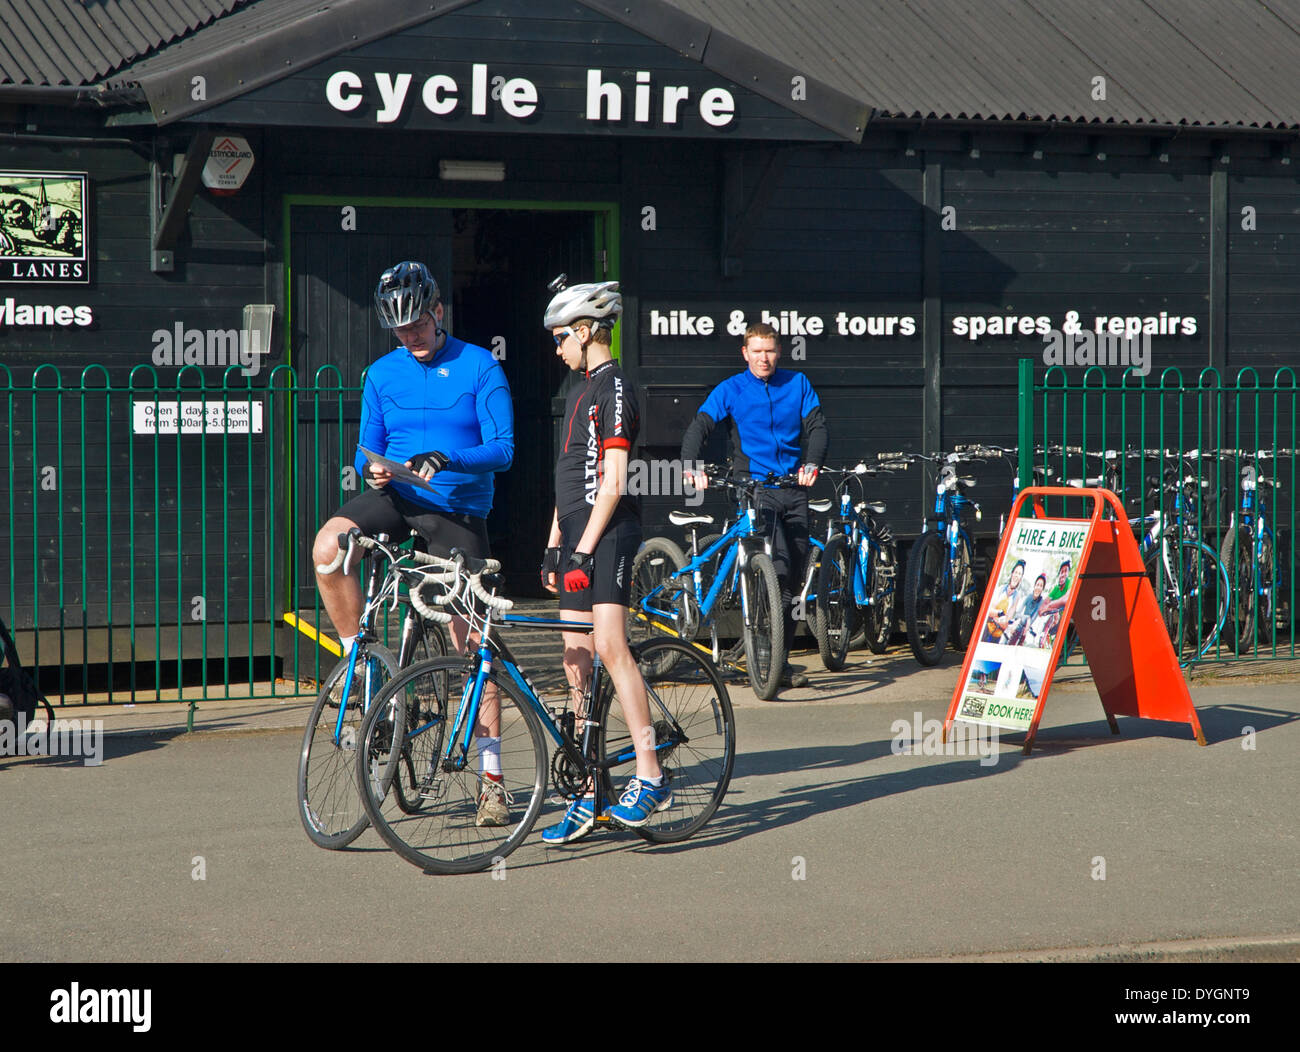 Cycles for hire, Windermere, Lake District National Park, Cumbria, England UK - Stock Image